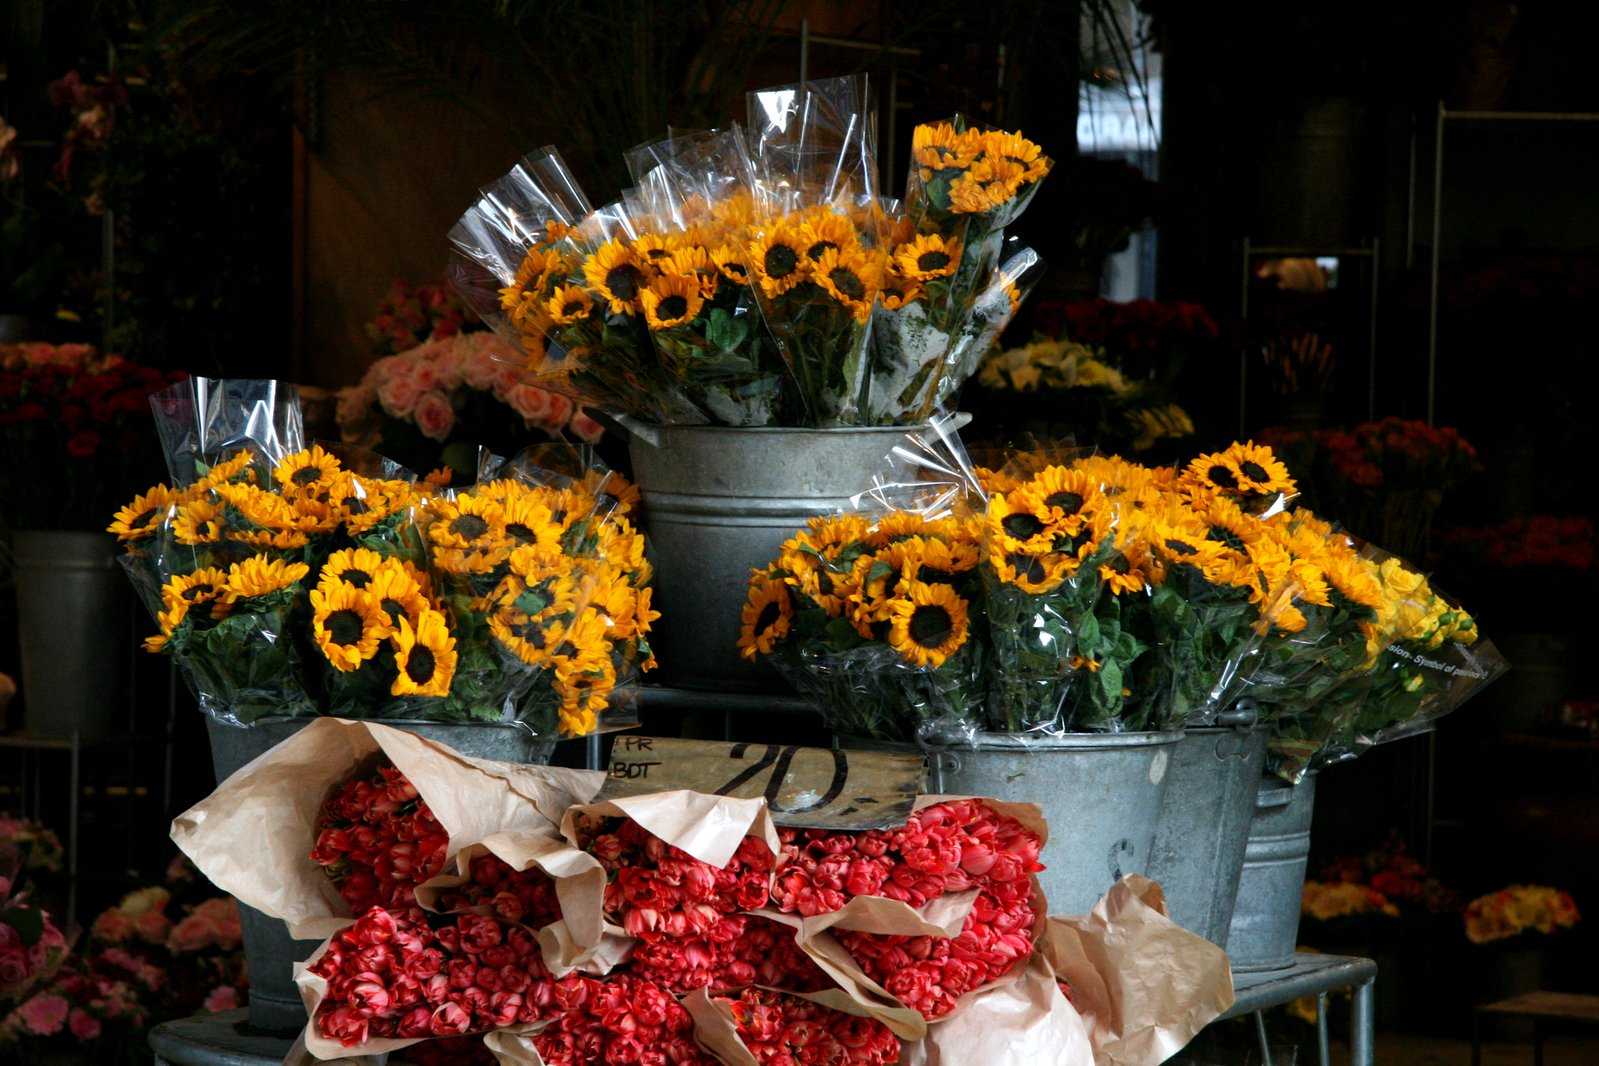 Should you shop online or at your local florist